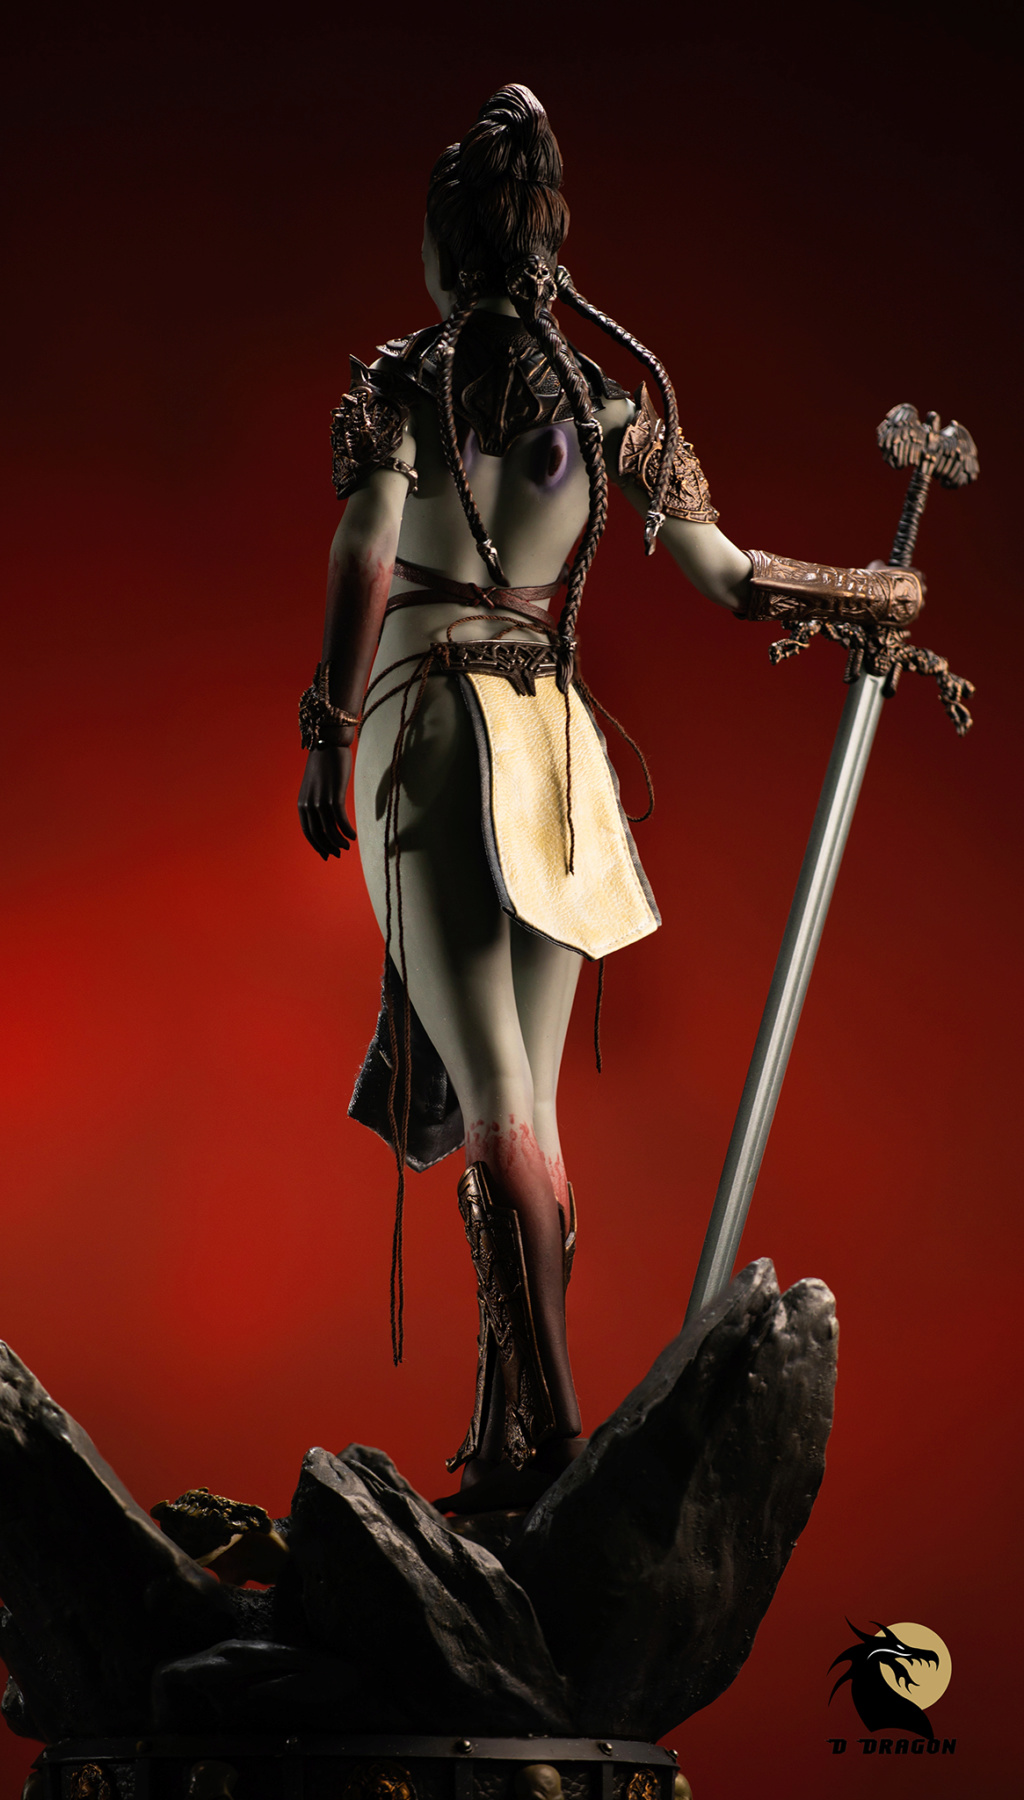 tbleague - NEW PRODUCT: TBLeague & Sideshow: 1/6 Court of the Dead - Valkyrie Cole / Kier movable doll (PL2019-141) Kier_310